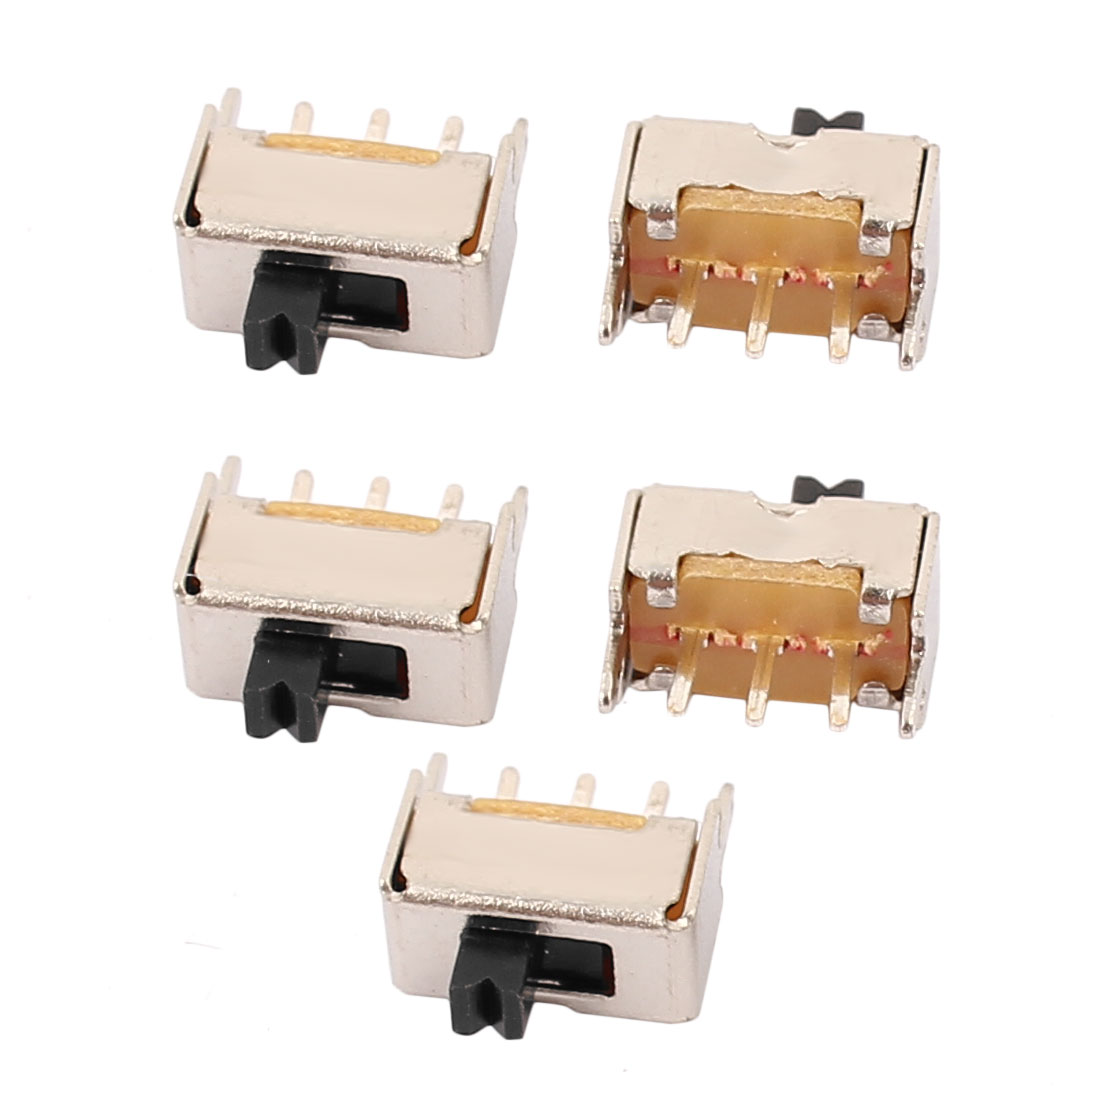 5Pcs SS-12D07 2 Position 3P SPDT Mini Slide Switch Latching Toy Switch